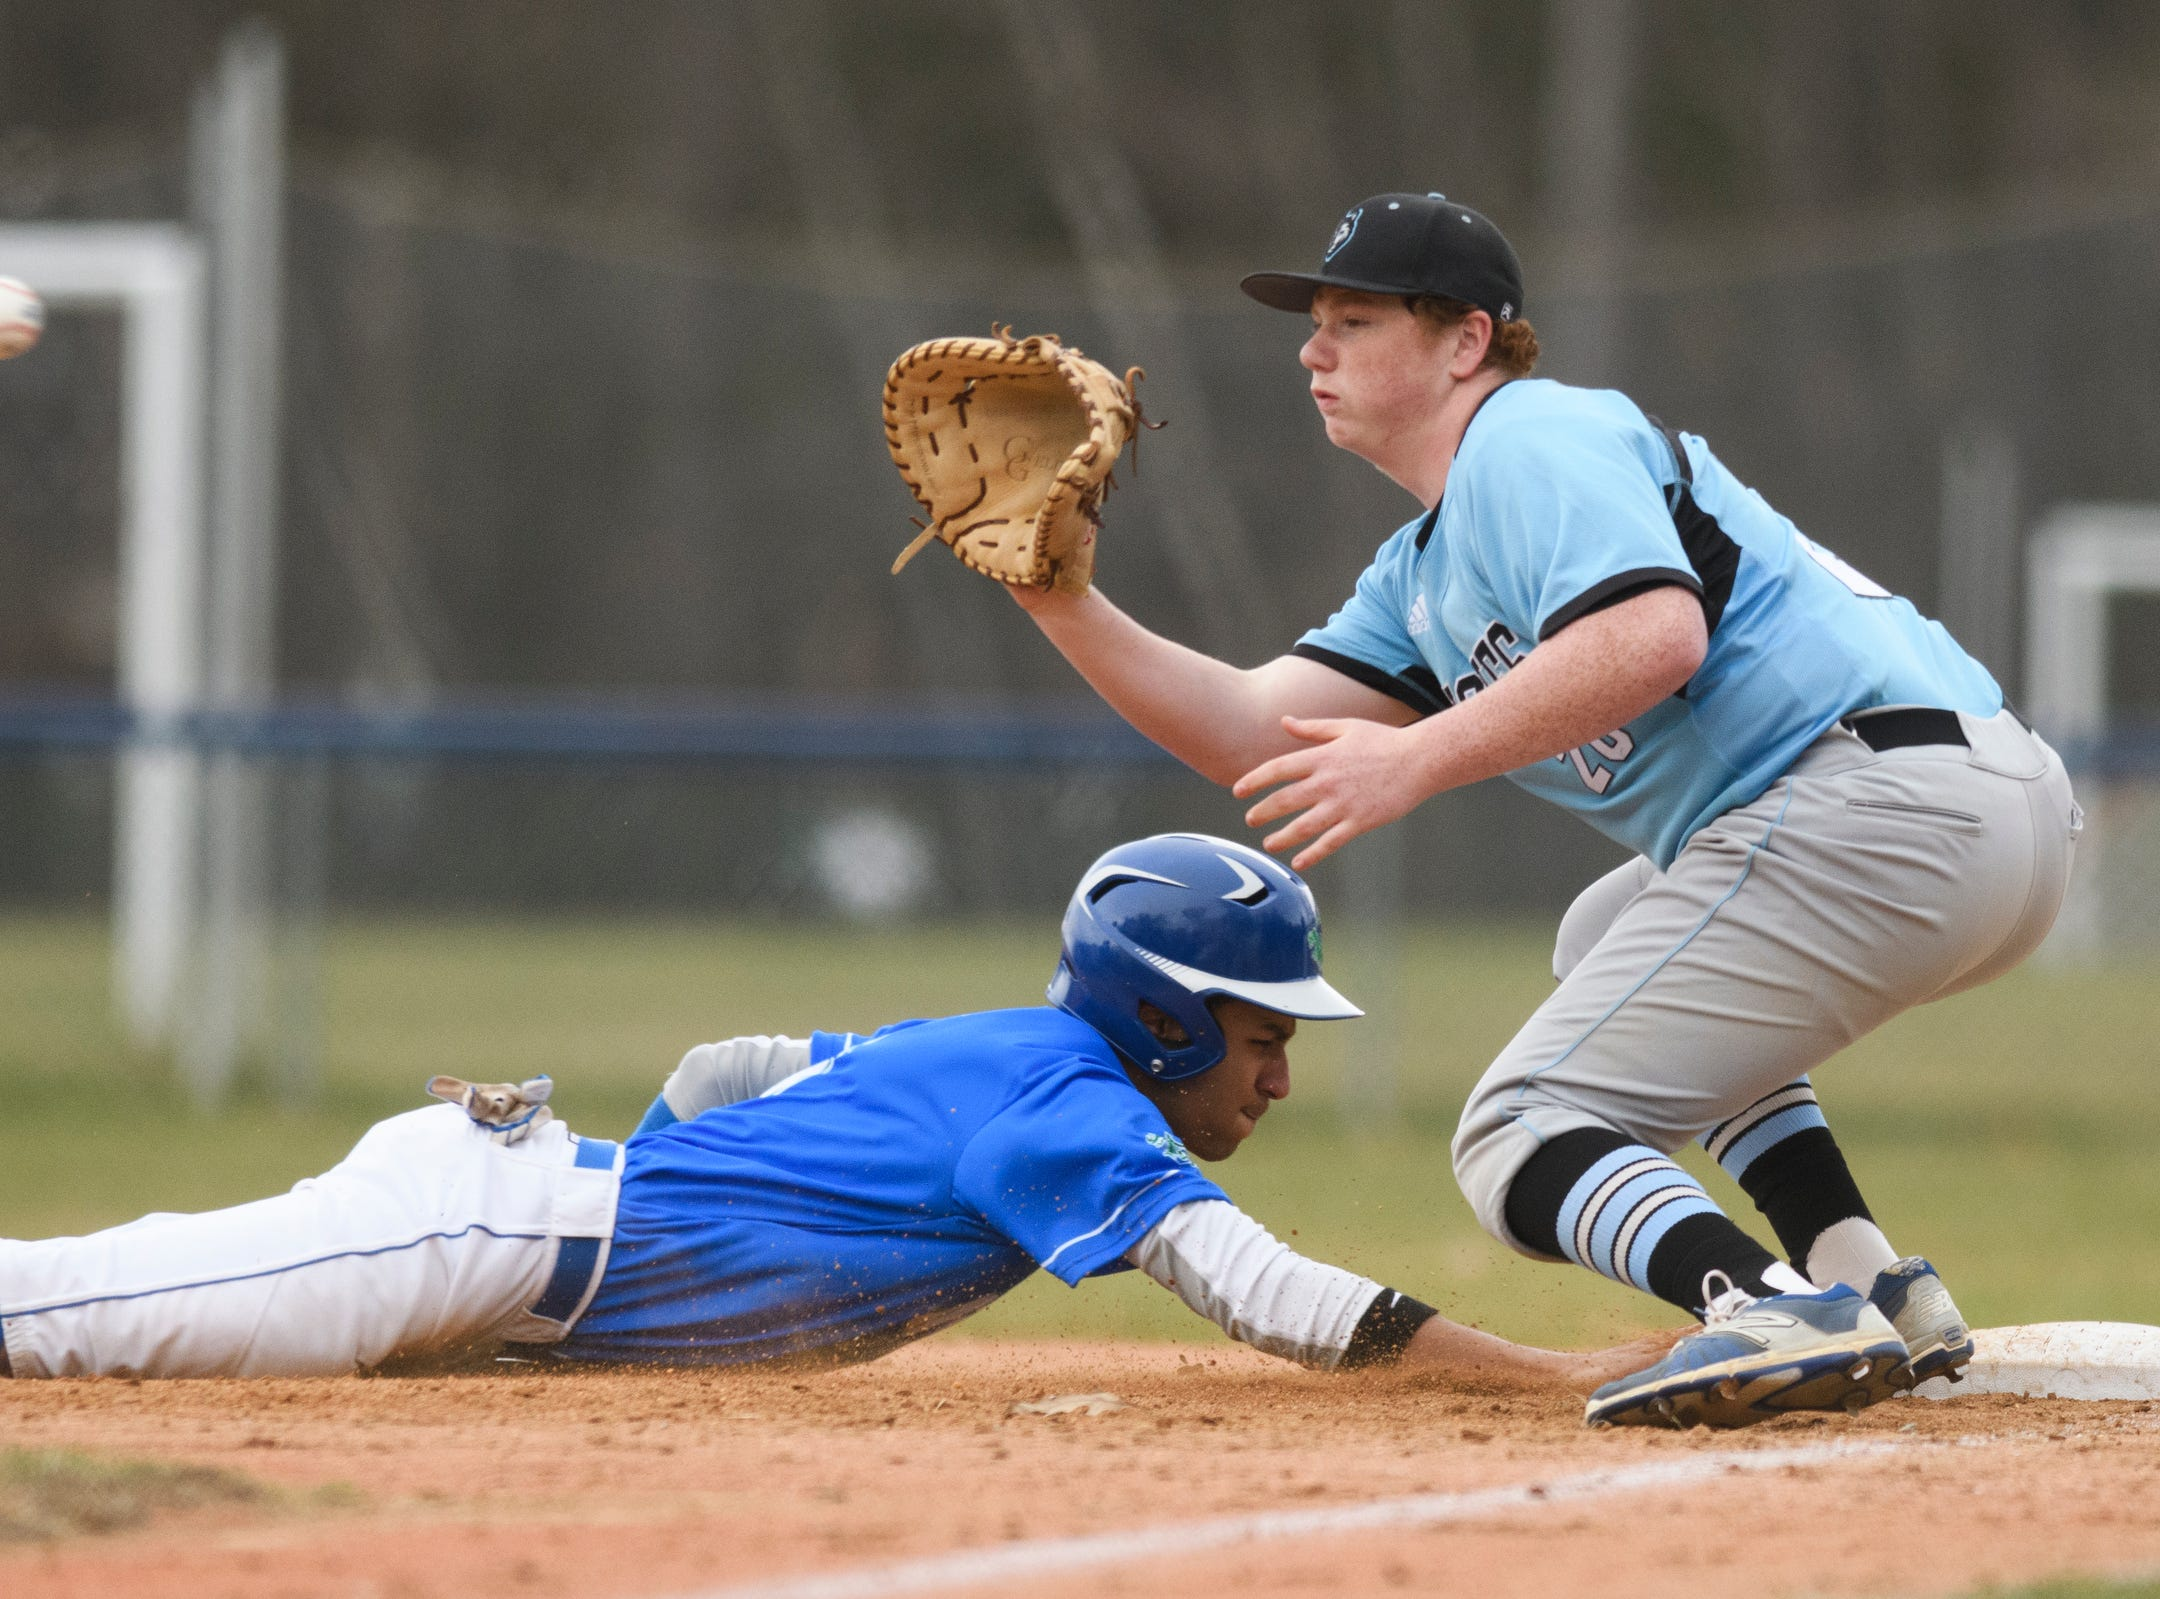 Colchester's Saul Minaya (3) dives to first as South Burlington's Ethan Moore (20) plays the pic off attempt during the boys baseball game between the South Burlington Wolves and the Colchester Lakers at Colchester high school on Thursday afternoon April 18, 2019 in Colchester, Vermont. (